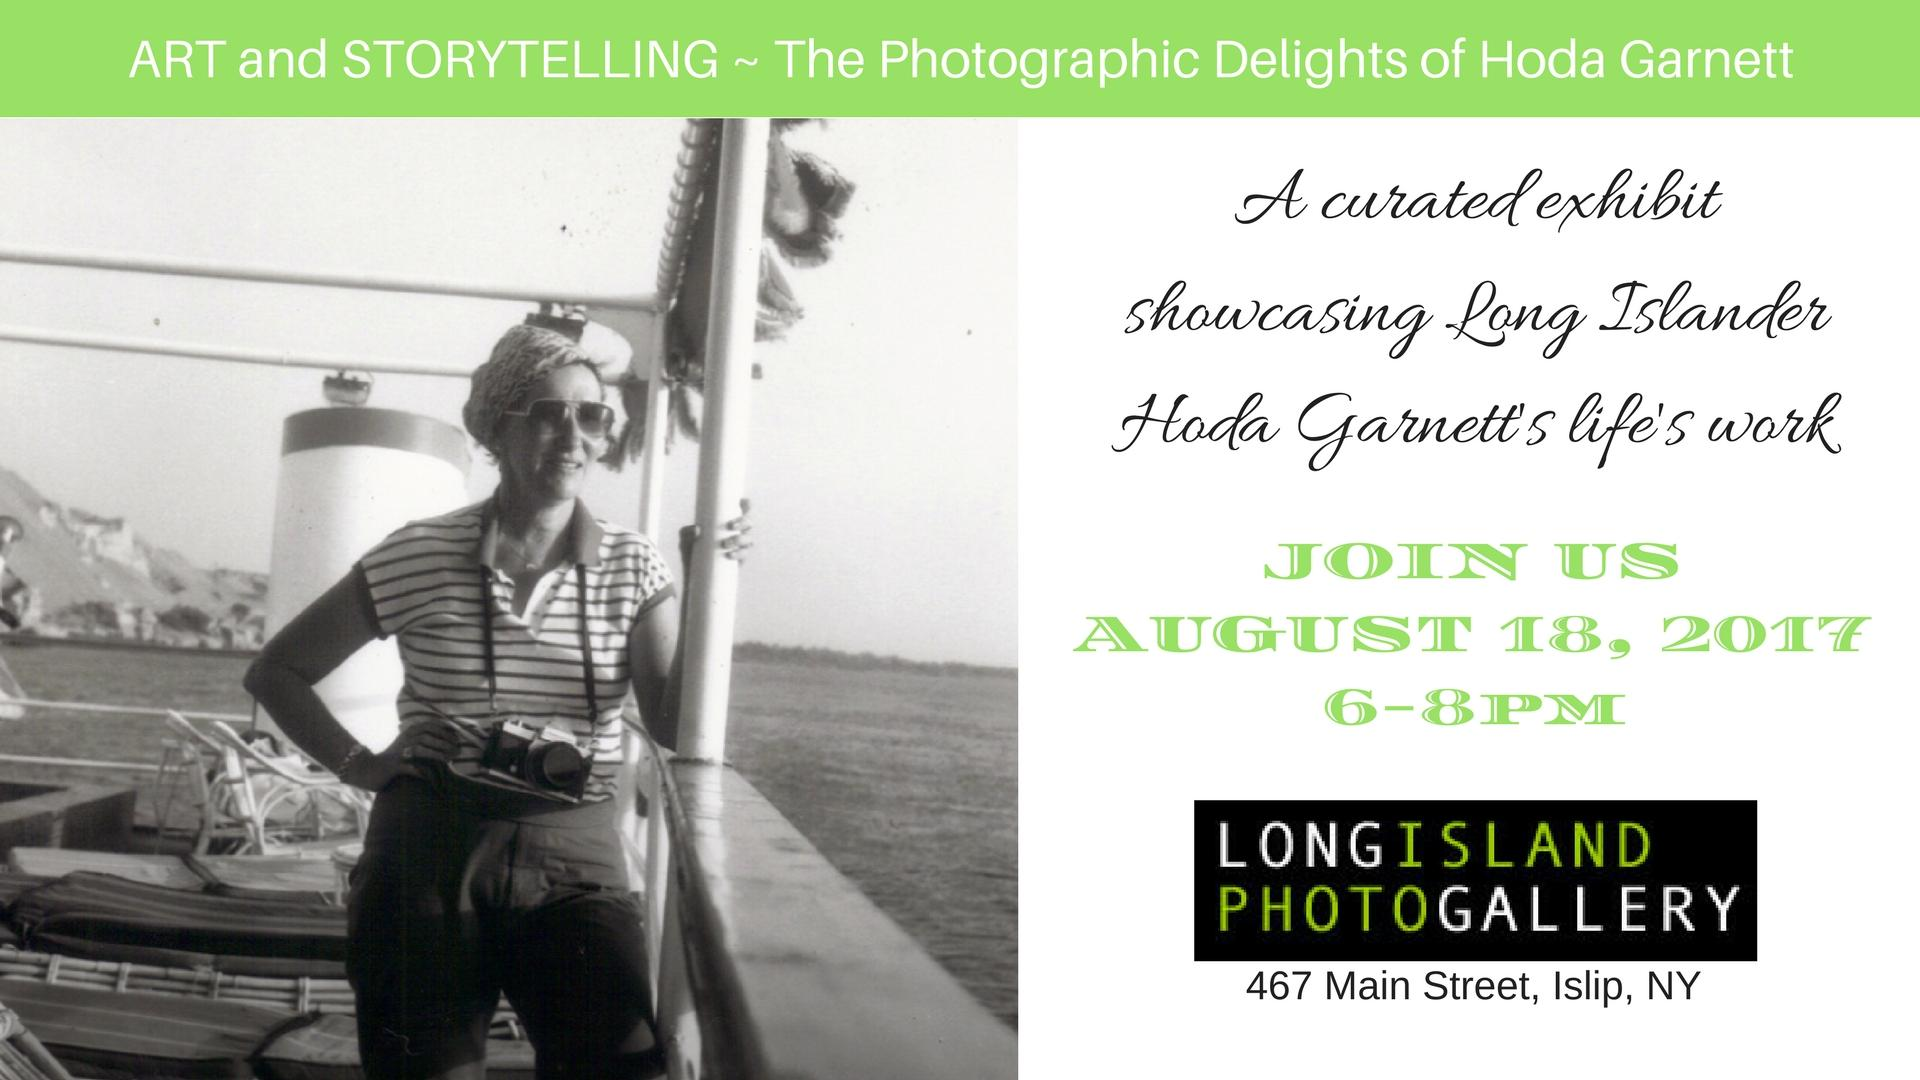 Art & Storytelling: The Photographic Delights